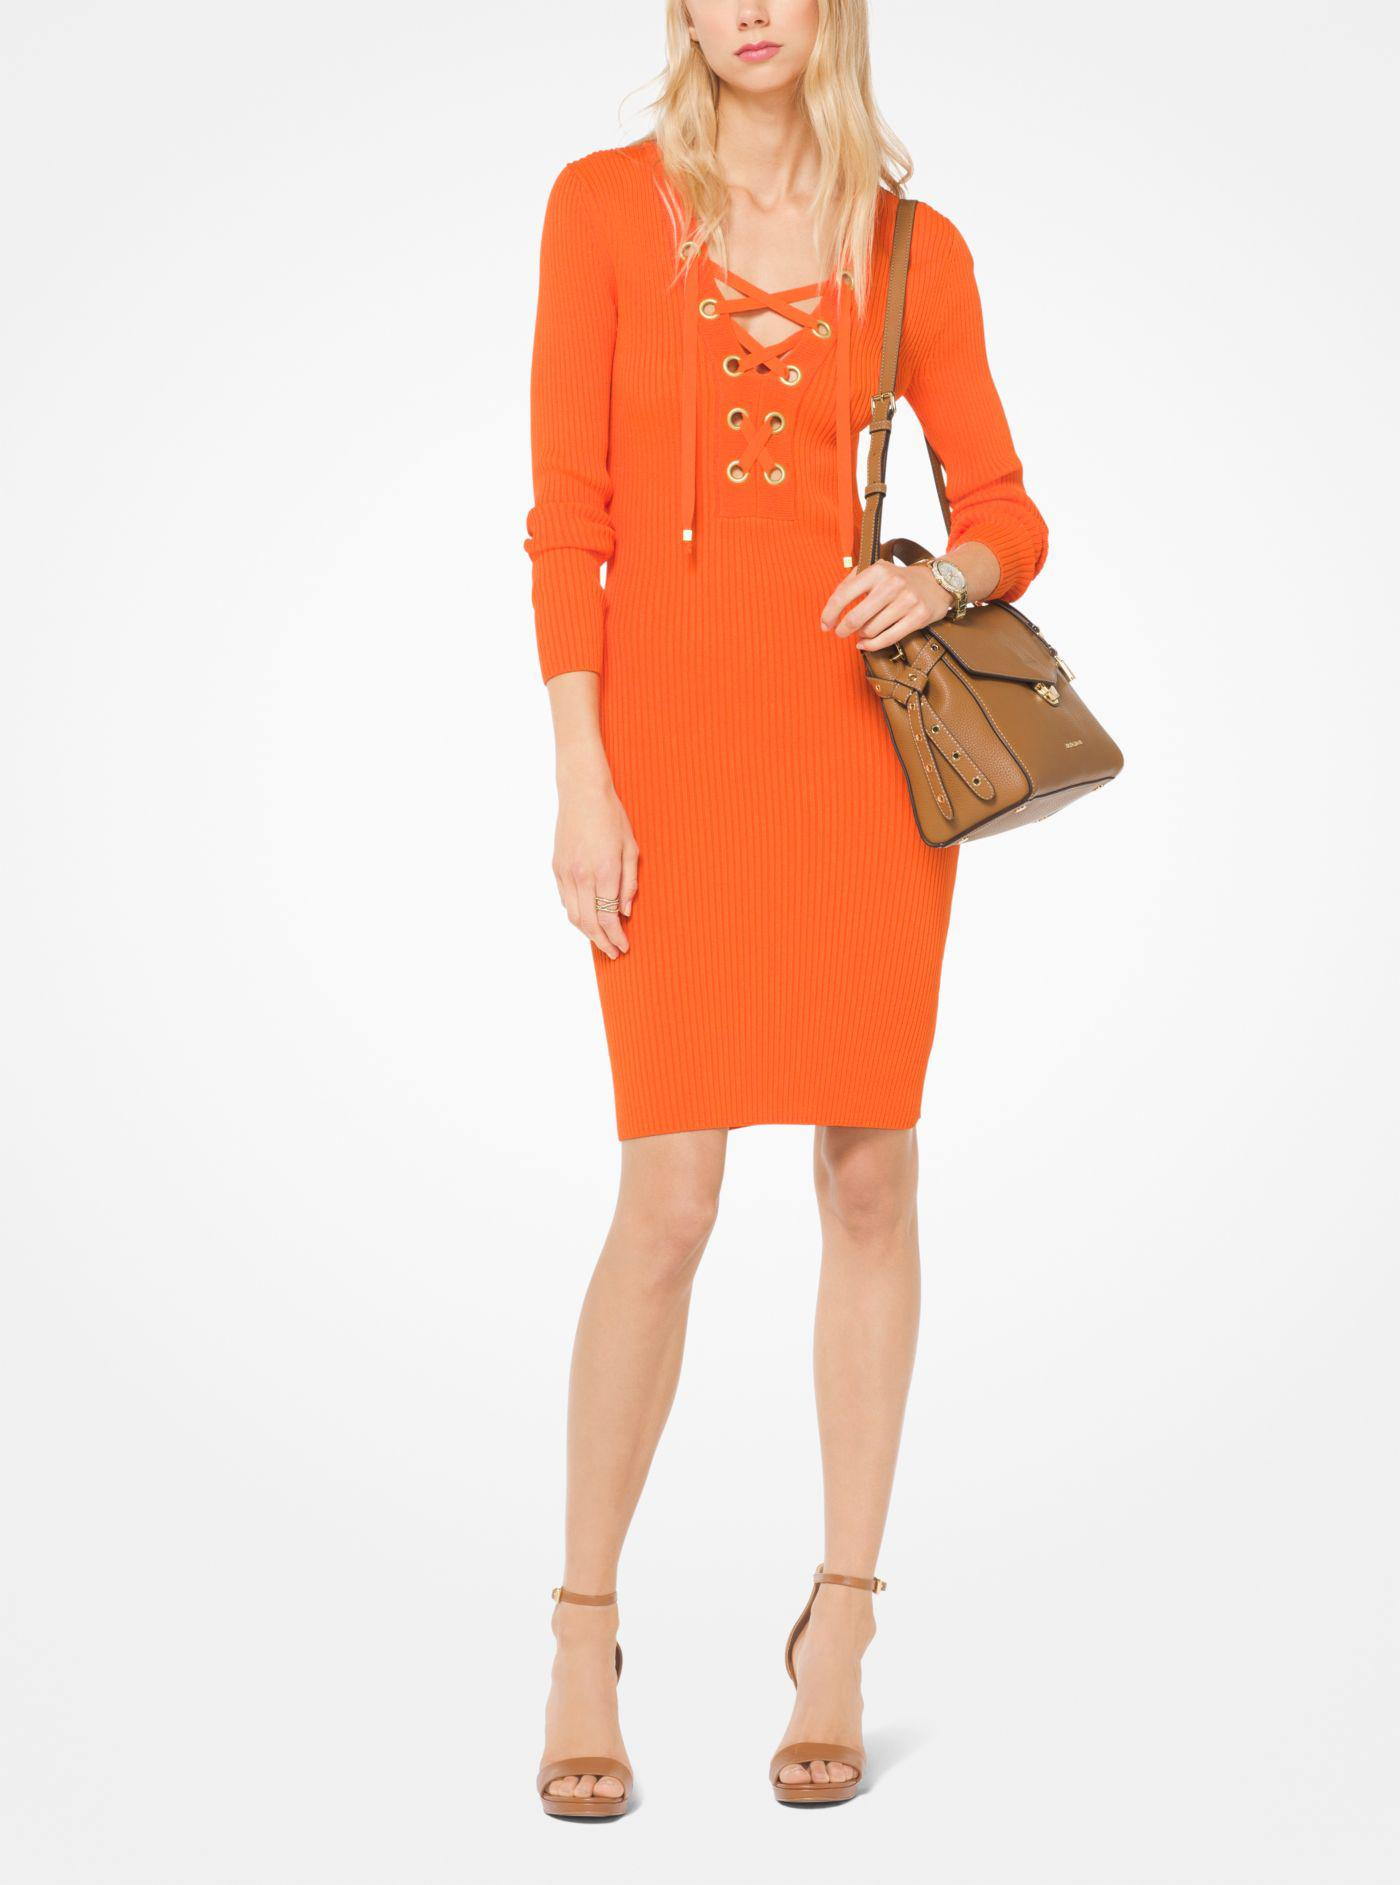 f34eb7bc07 Lyst - Michael Kors Lace-up Ribbed Dress in Orange